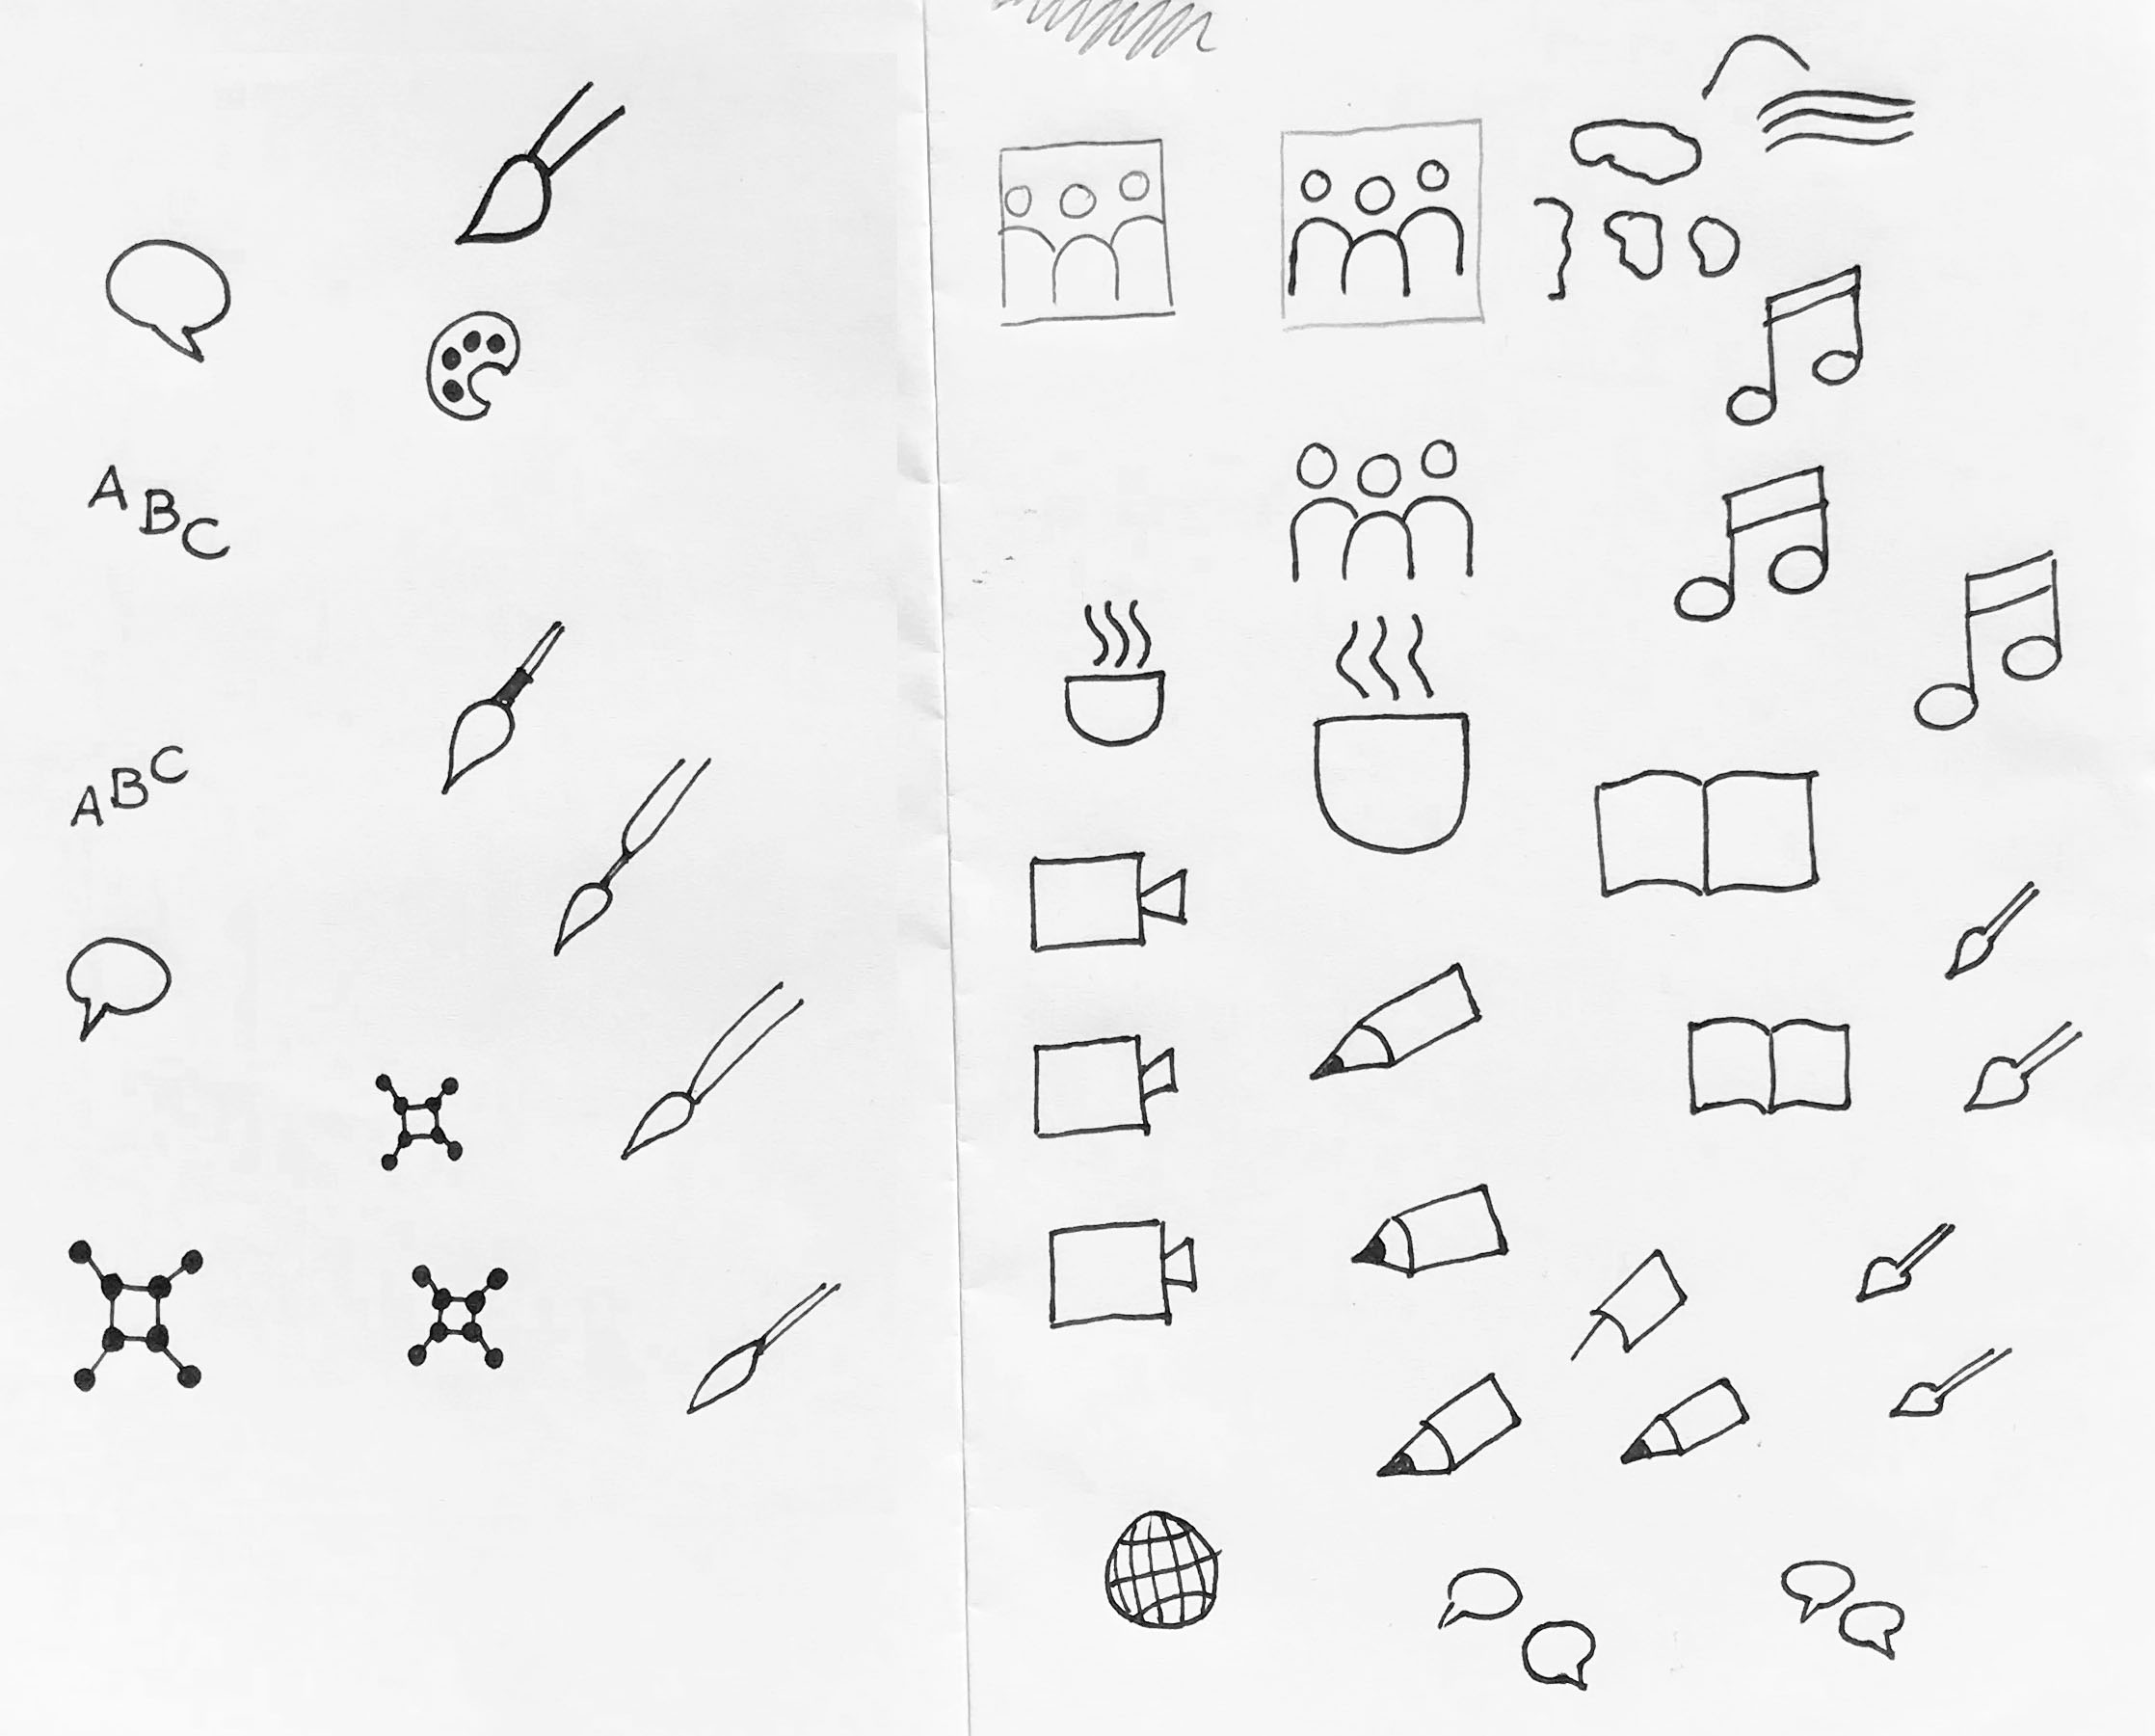 Icons for different student activities